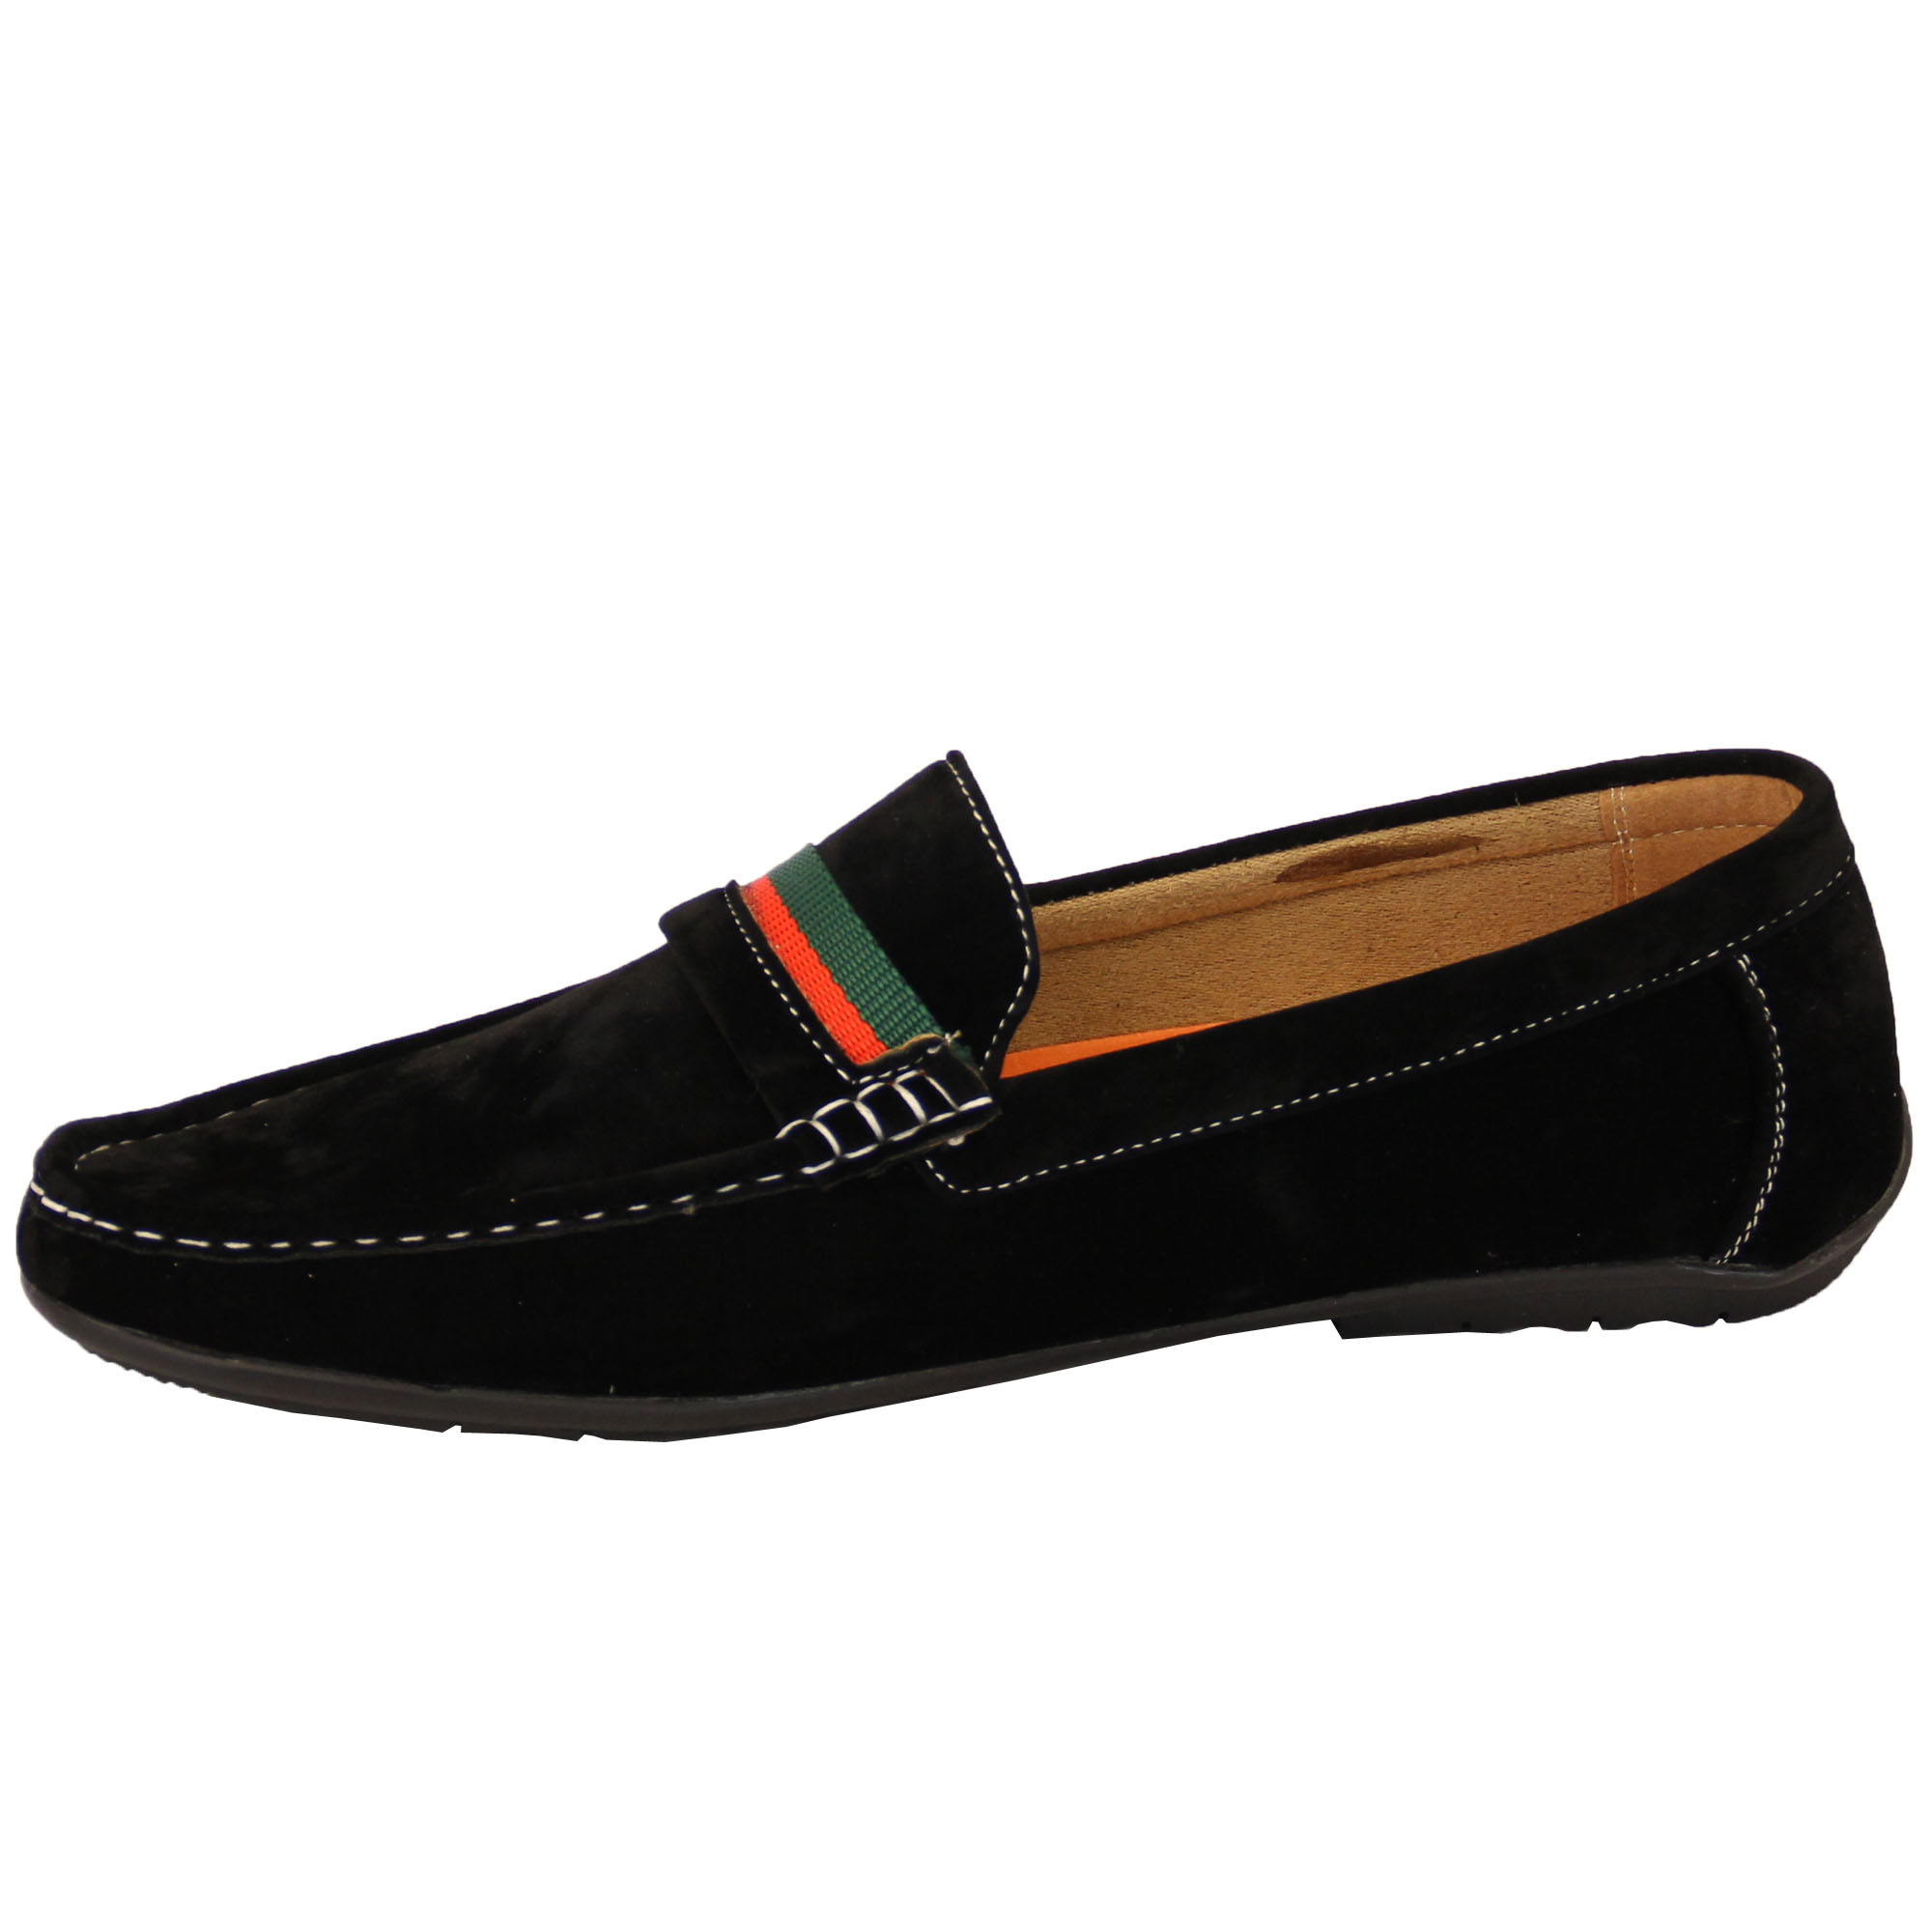 cde0f115c5b1d Mens Moccasins Suede Look Driving Loafers Slip On Boat Shoes Ribbon ...